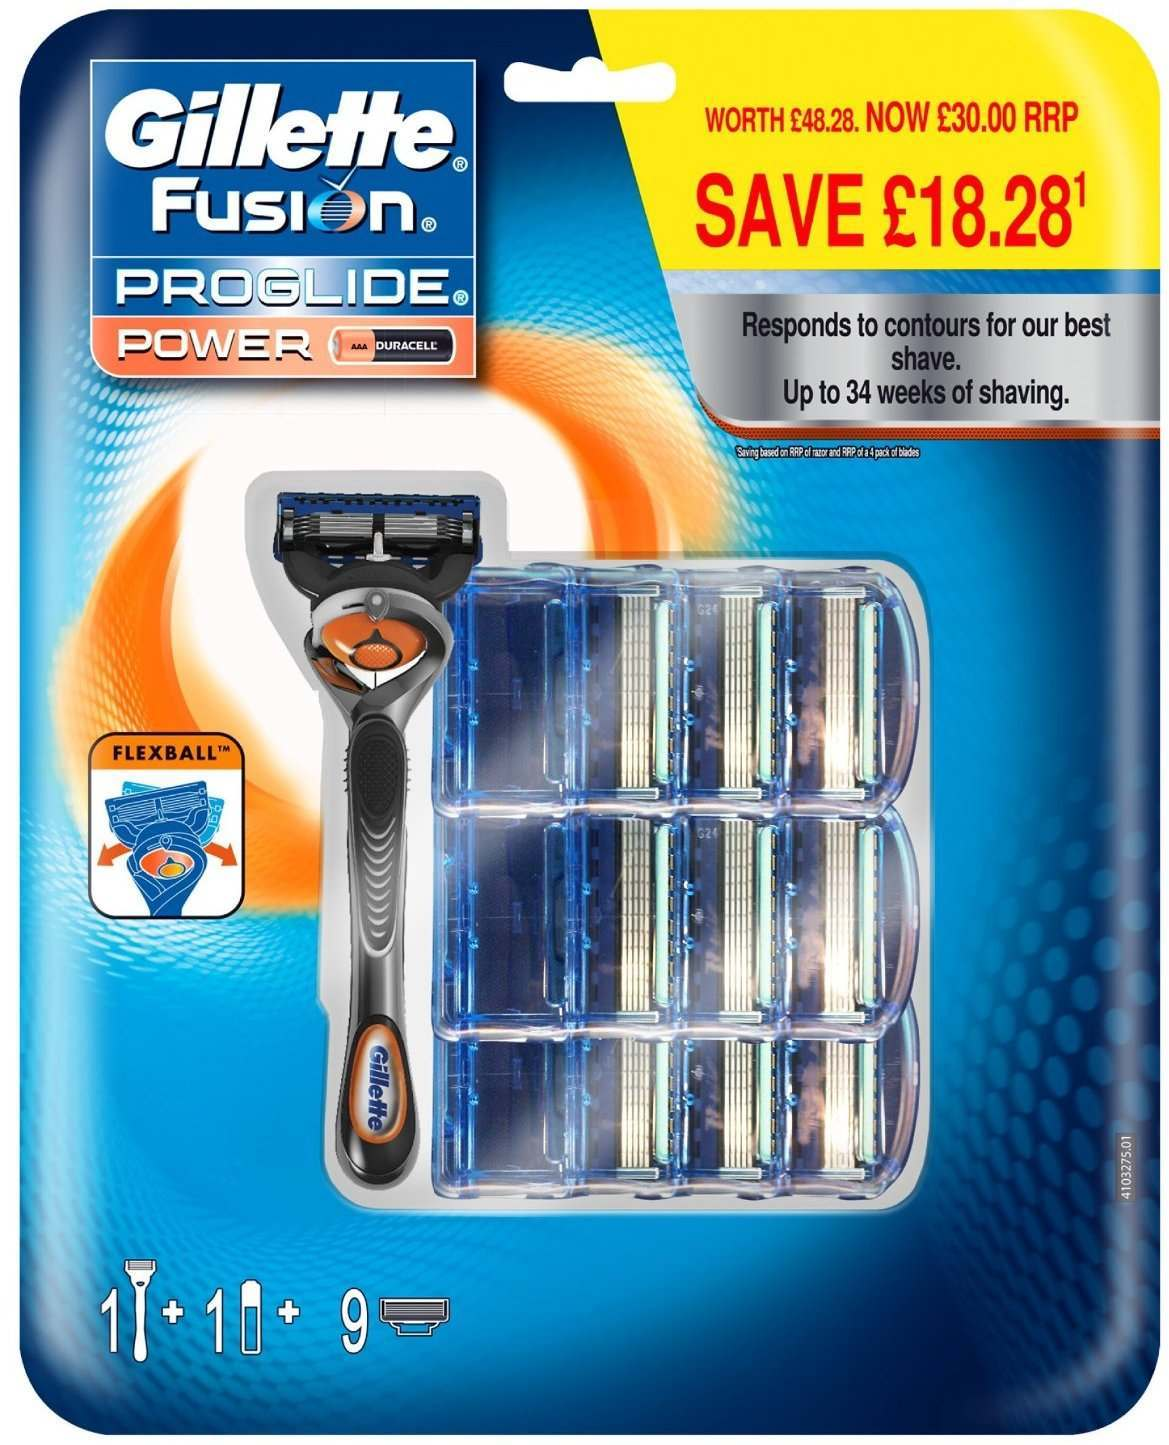 Gillette 81524194 Fusion Proglide Power Flexball Pack of 9 Blades with